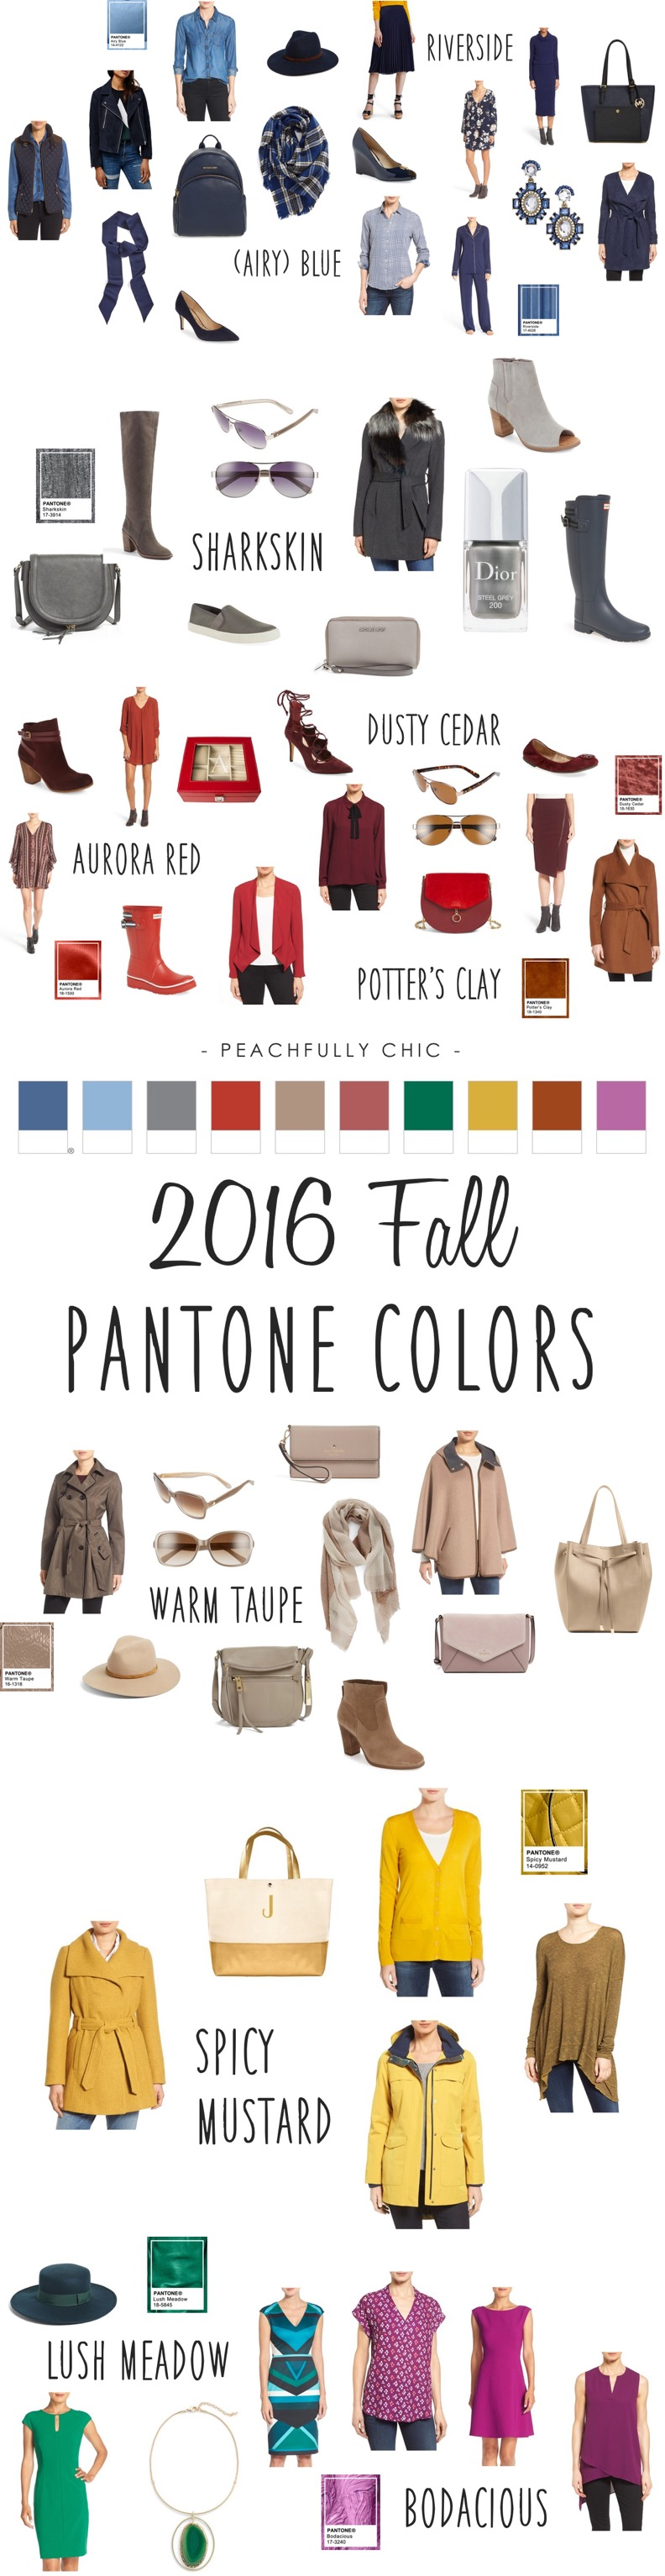 2016-Fall-Pantone-Colors-Peachfully-Chic-Pinterest